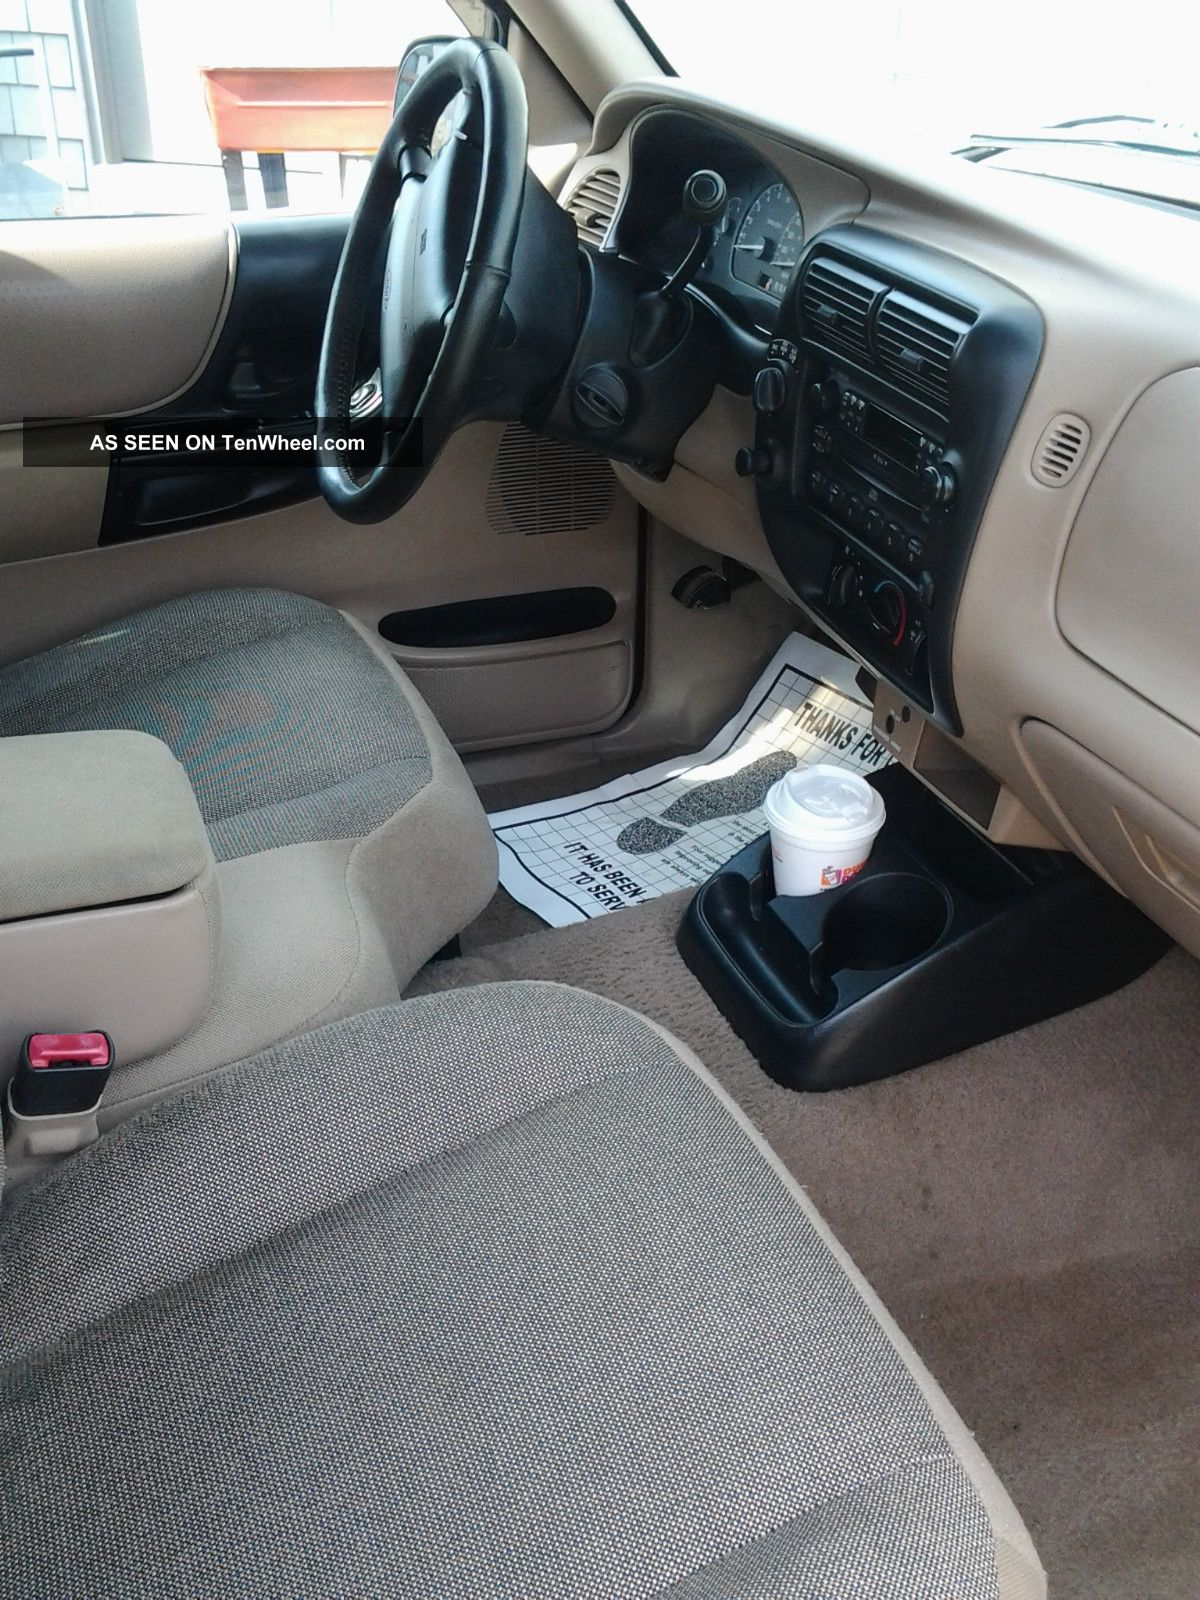 Charming 2000 Ford Ranger XLT Regular Cab Interior Photos . Beautiful TenWheel Design Ideas